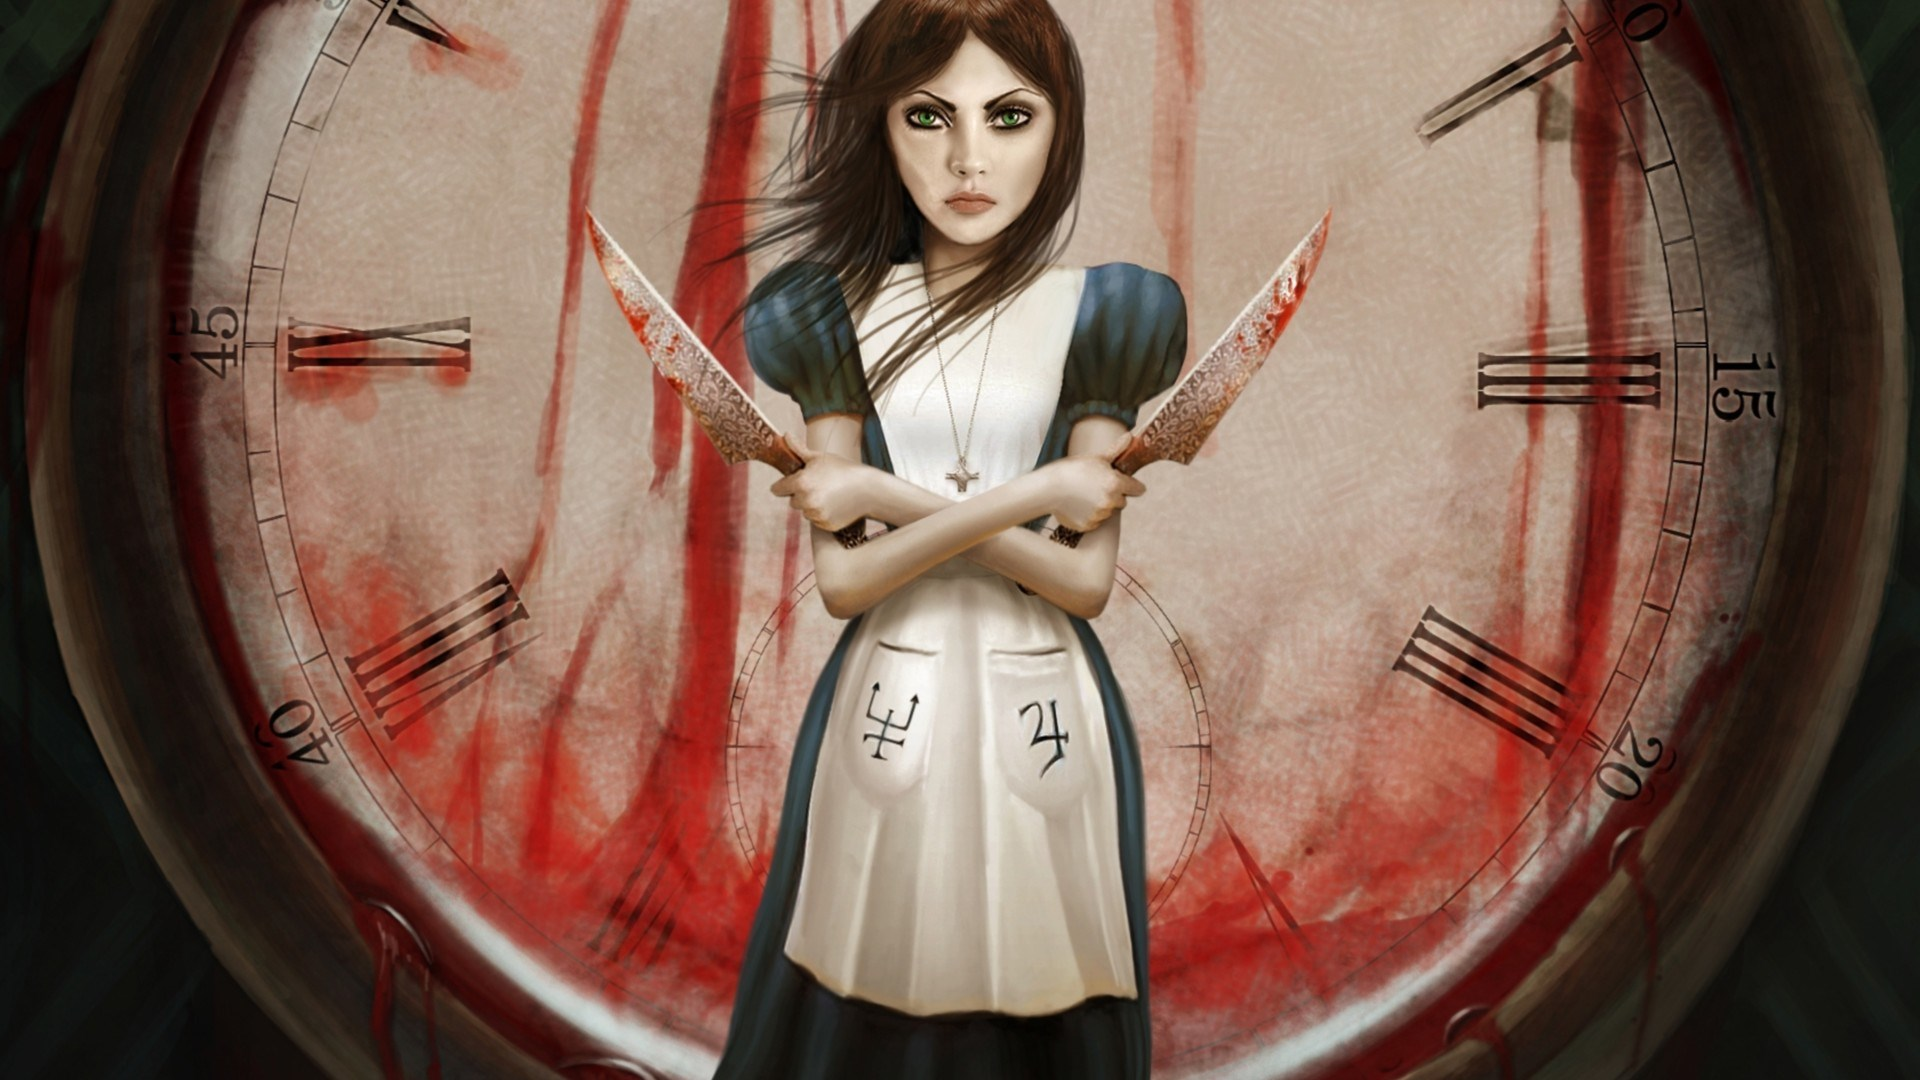 1920x1080-free-and-screensavers-for-american-mcgees-alice-wallpaper-wpc920871